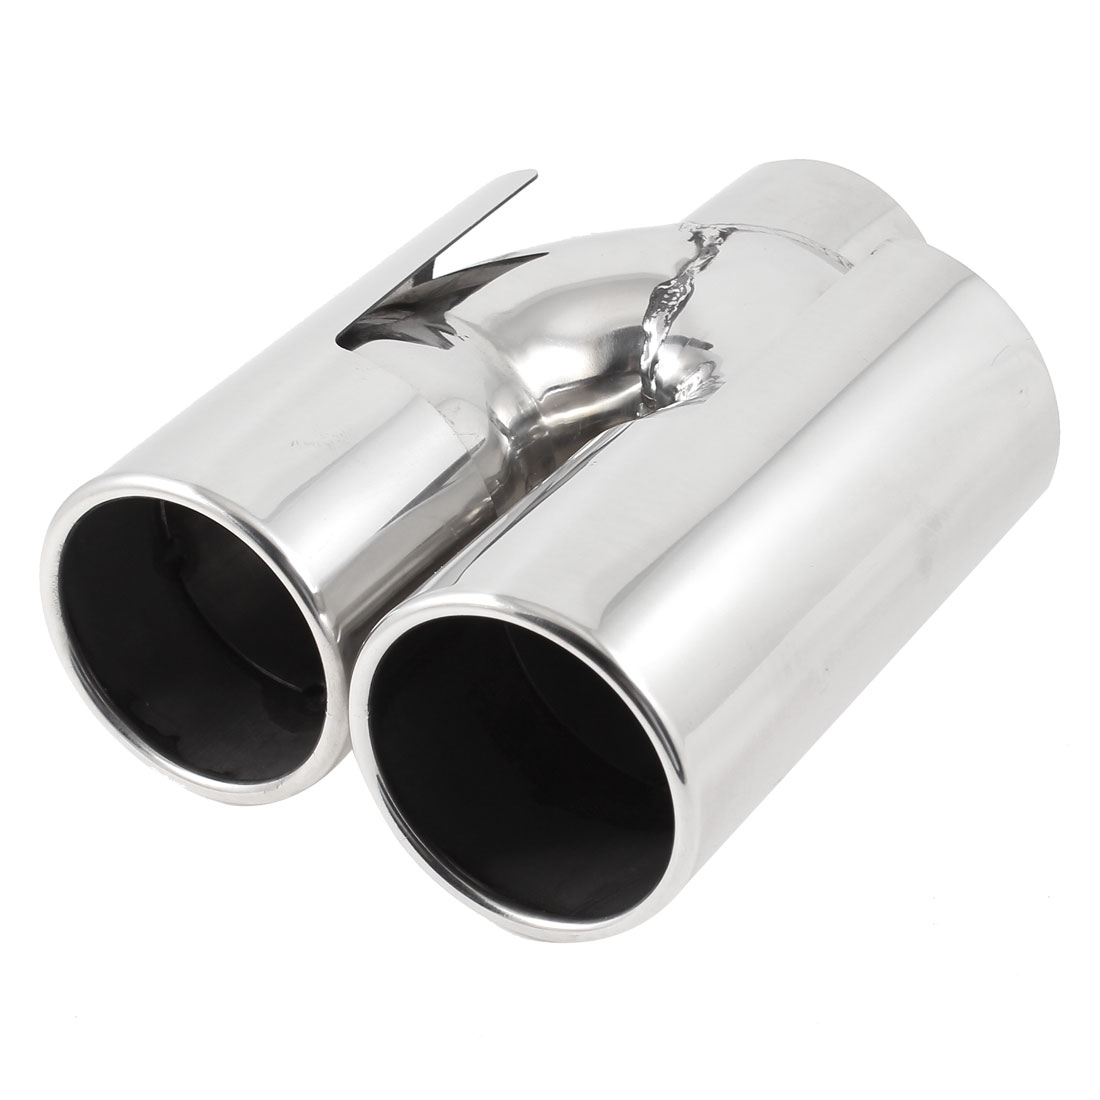 60mm Inlet Dual Tip Stainless Steel Exhaust Resonator Muffler Pipe for BMW X1